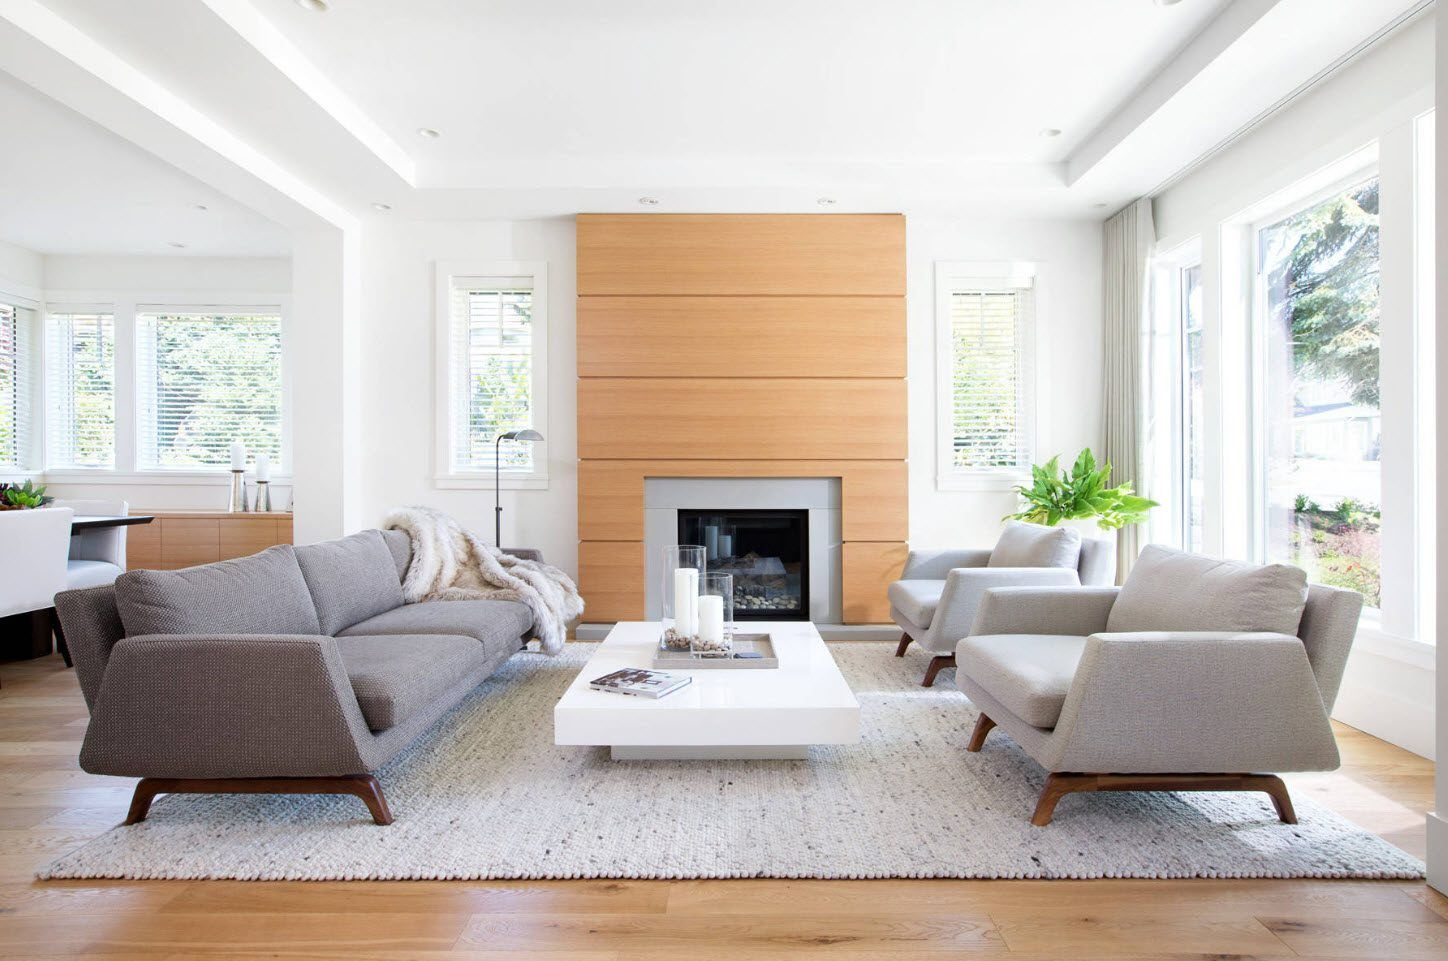 Wooden trimming of the accent wall in ultramodern living room